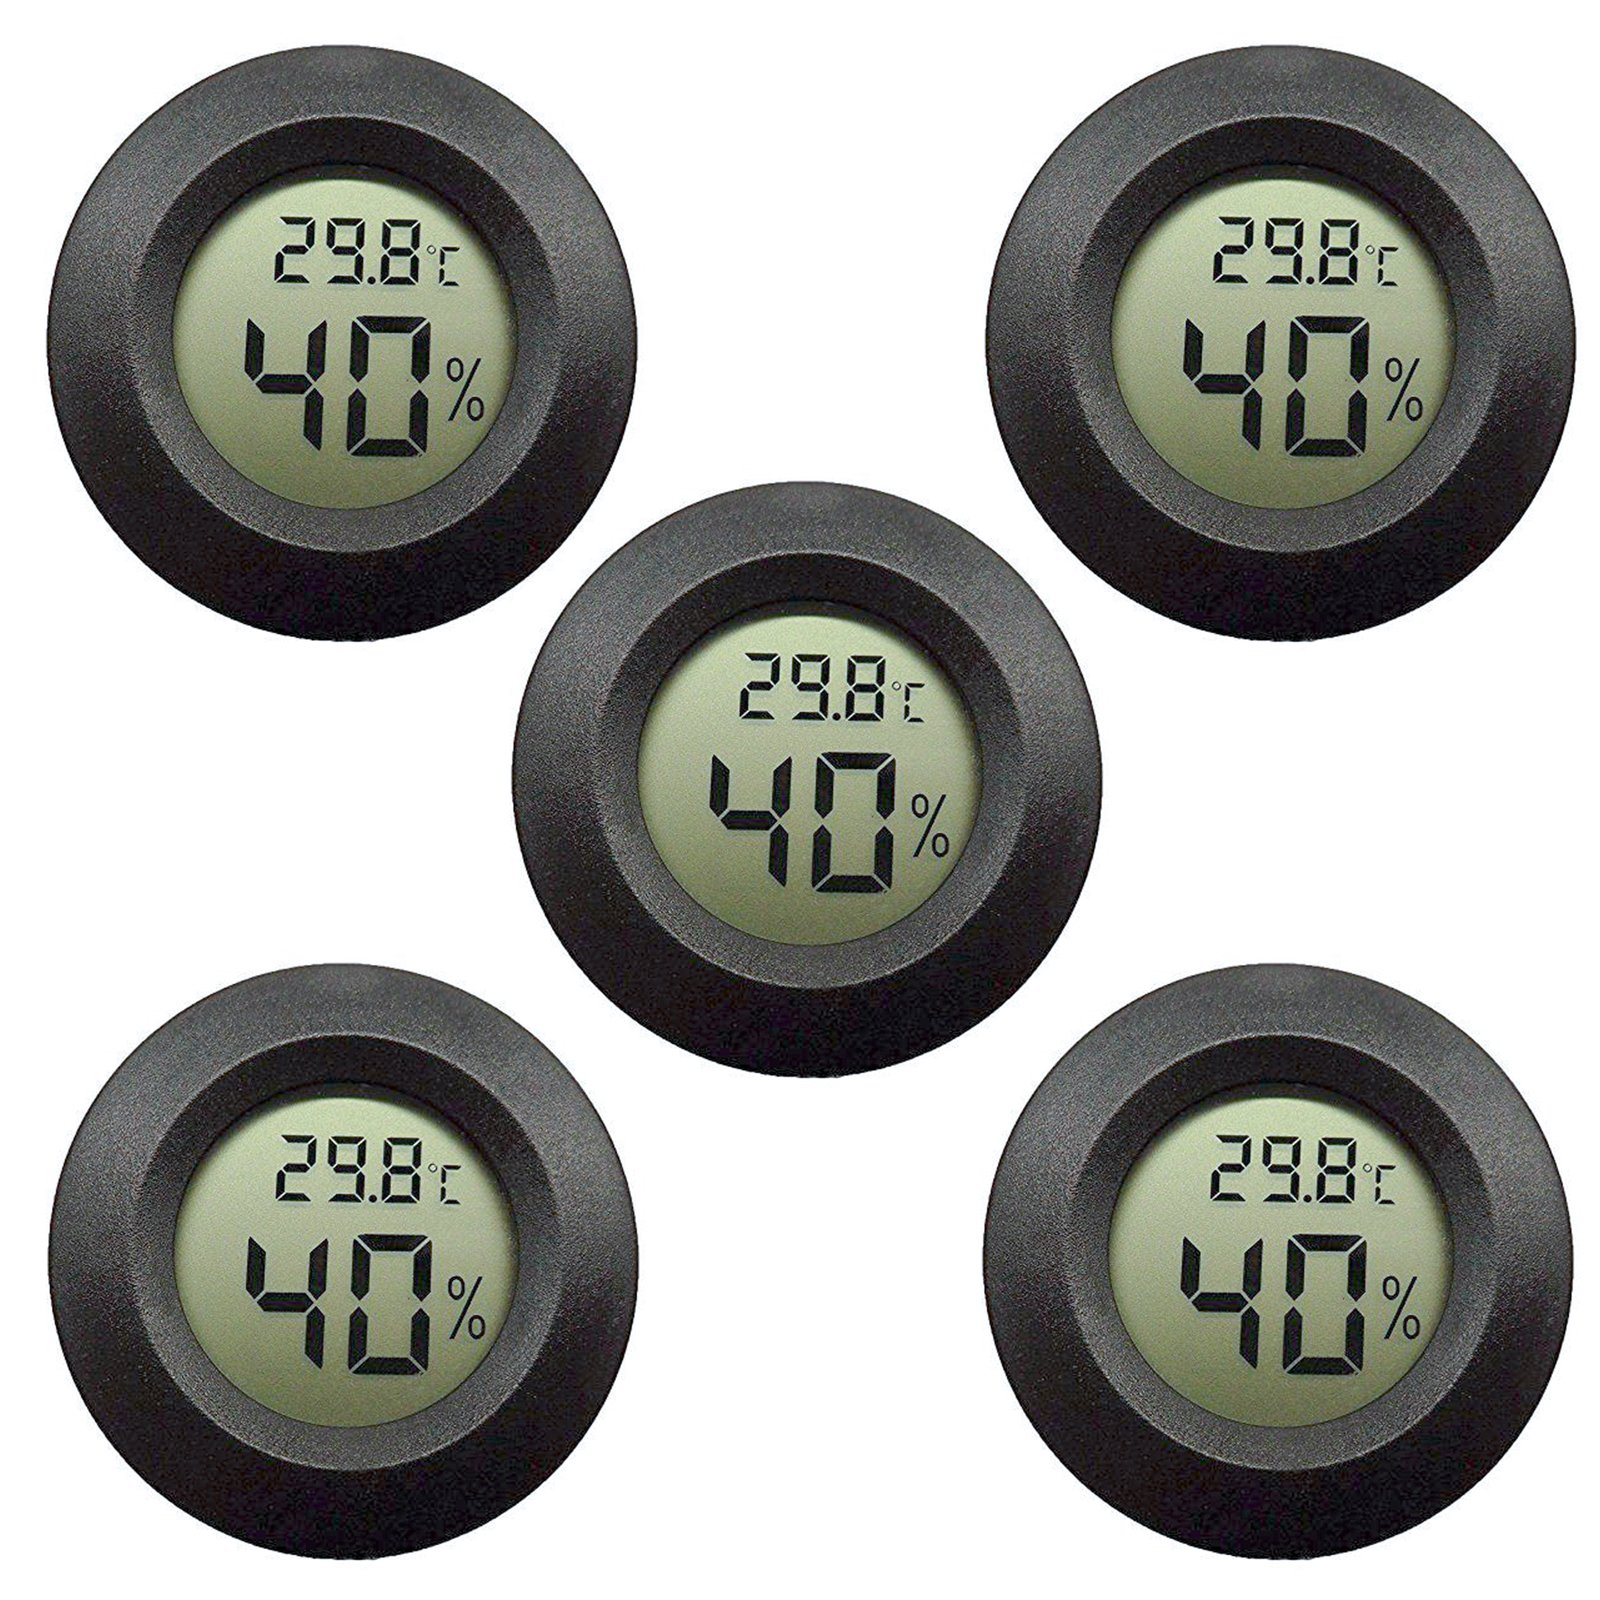 5-pack EEEkit Hygrometer Thermometer Digital LCD Monitor Indoor Outdoor Humidity Meter Gauge for Humidifiers Dehumidifiers Greenhouse Basement Babyroom, Black Round